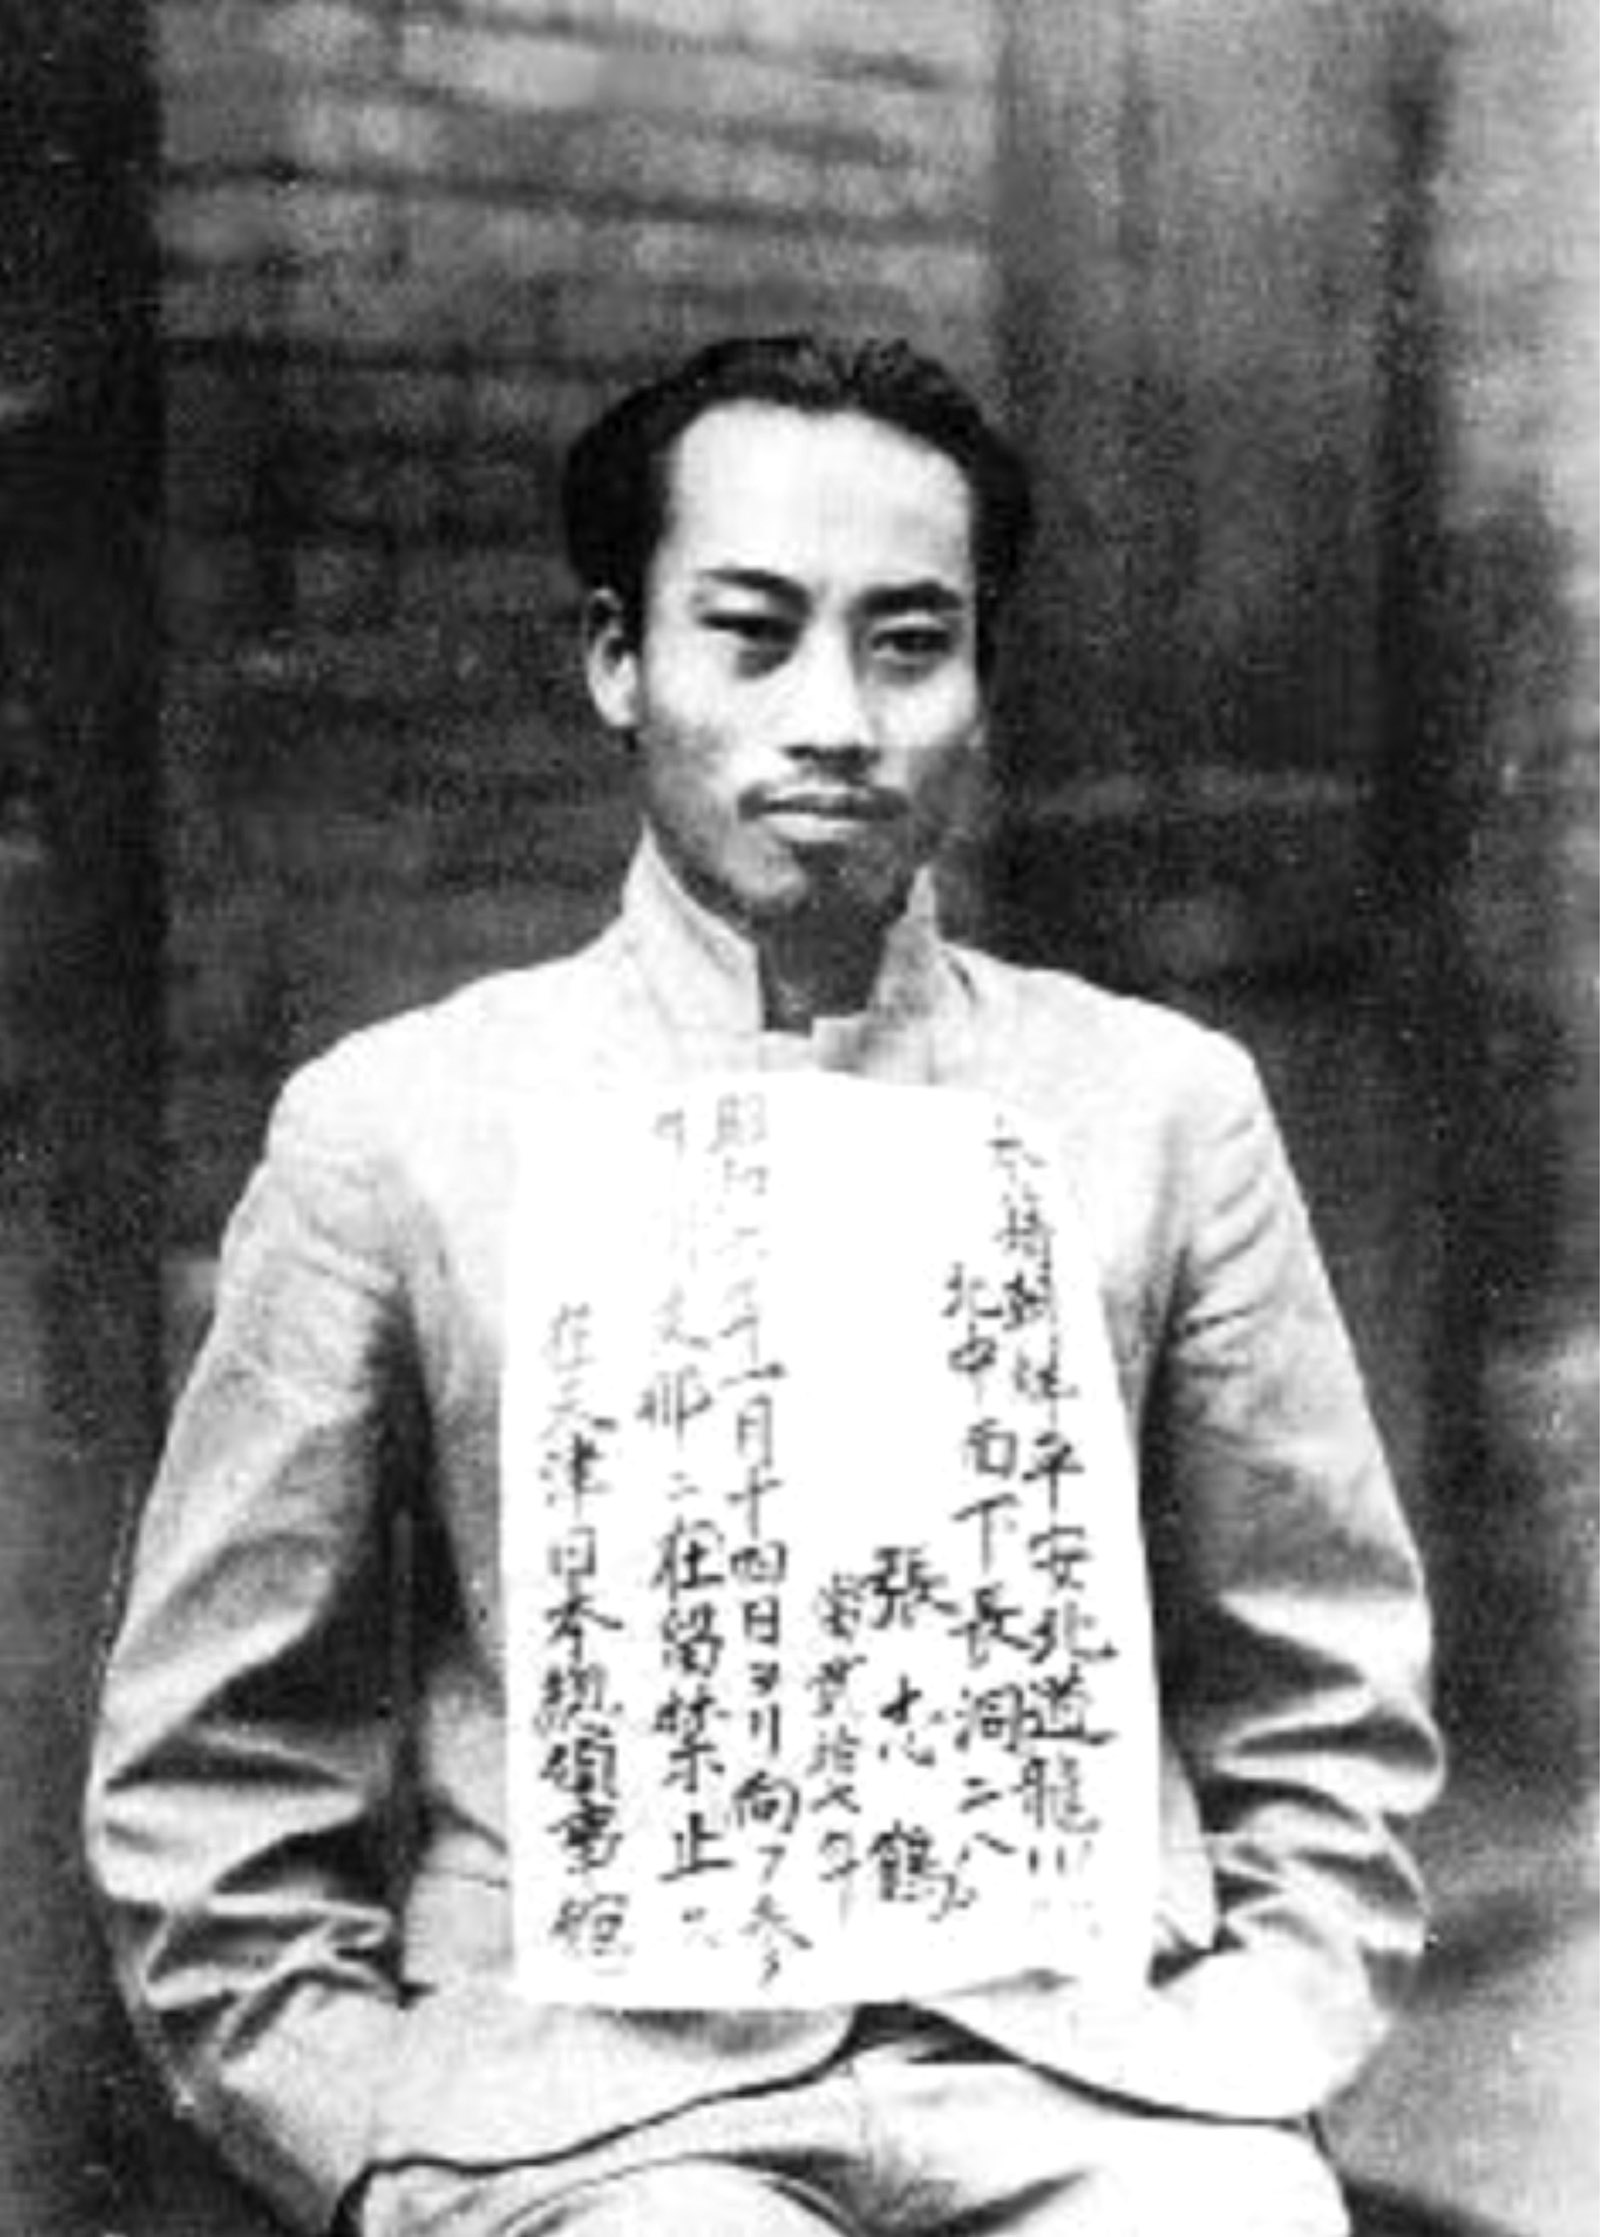 Kim San under arrest, possibly at the Japanese consulate in Tianjin, 1931. The notice on his chest states that he would be banned from China for three years